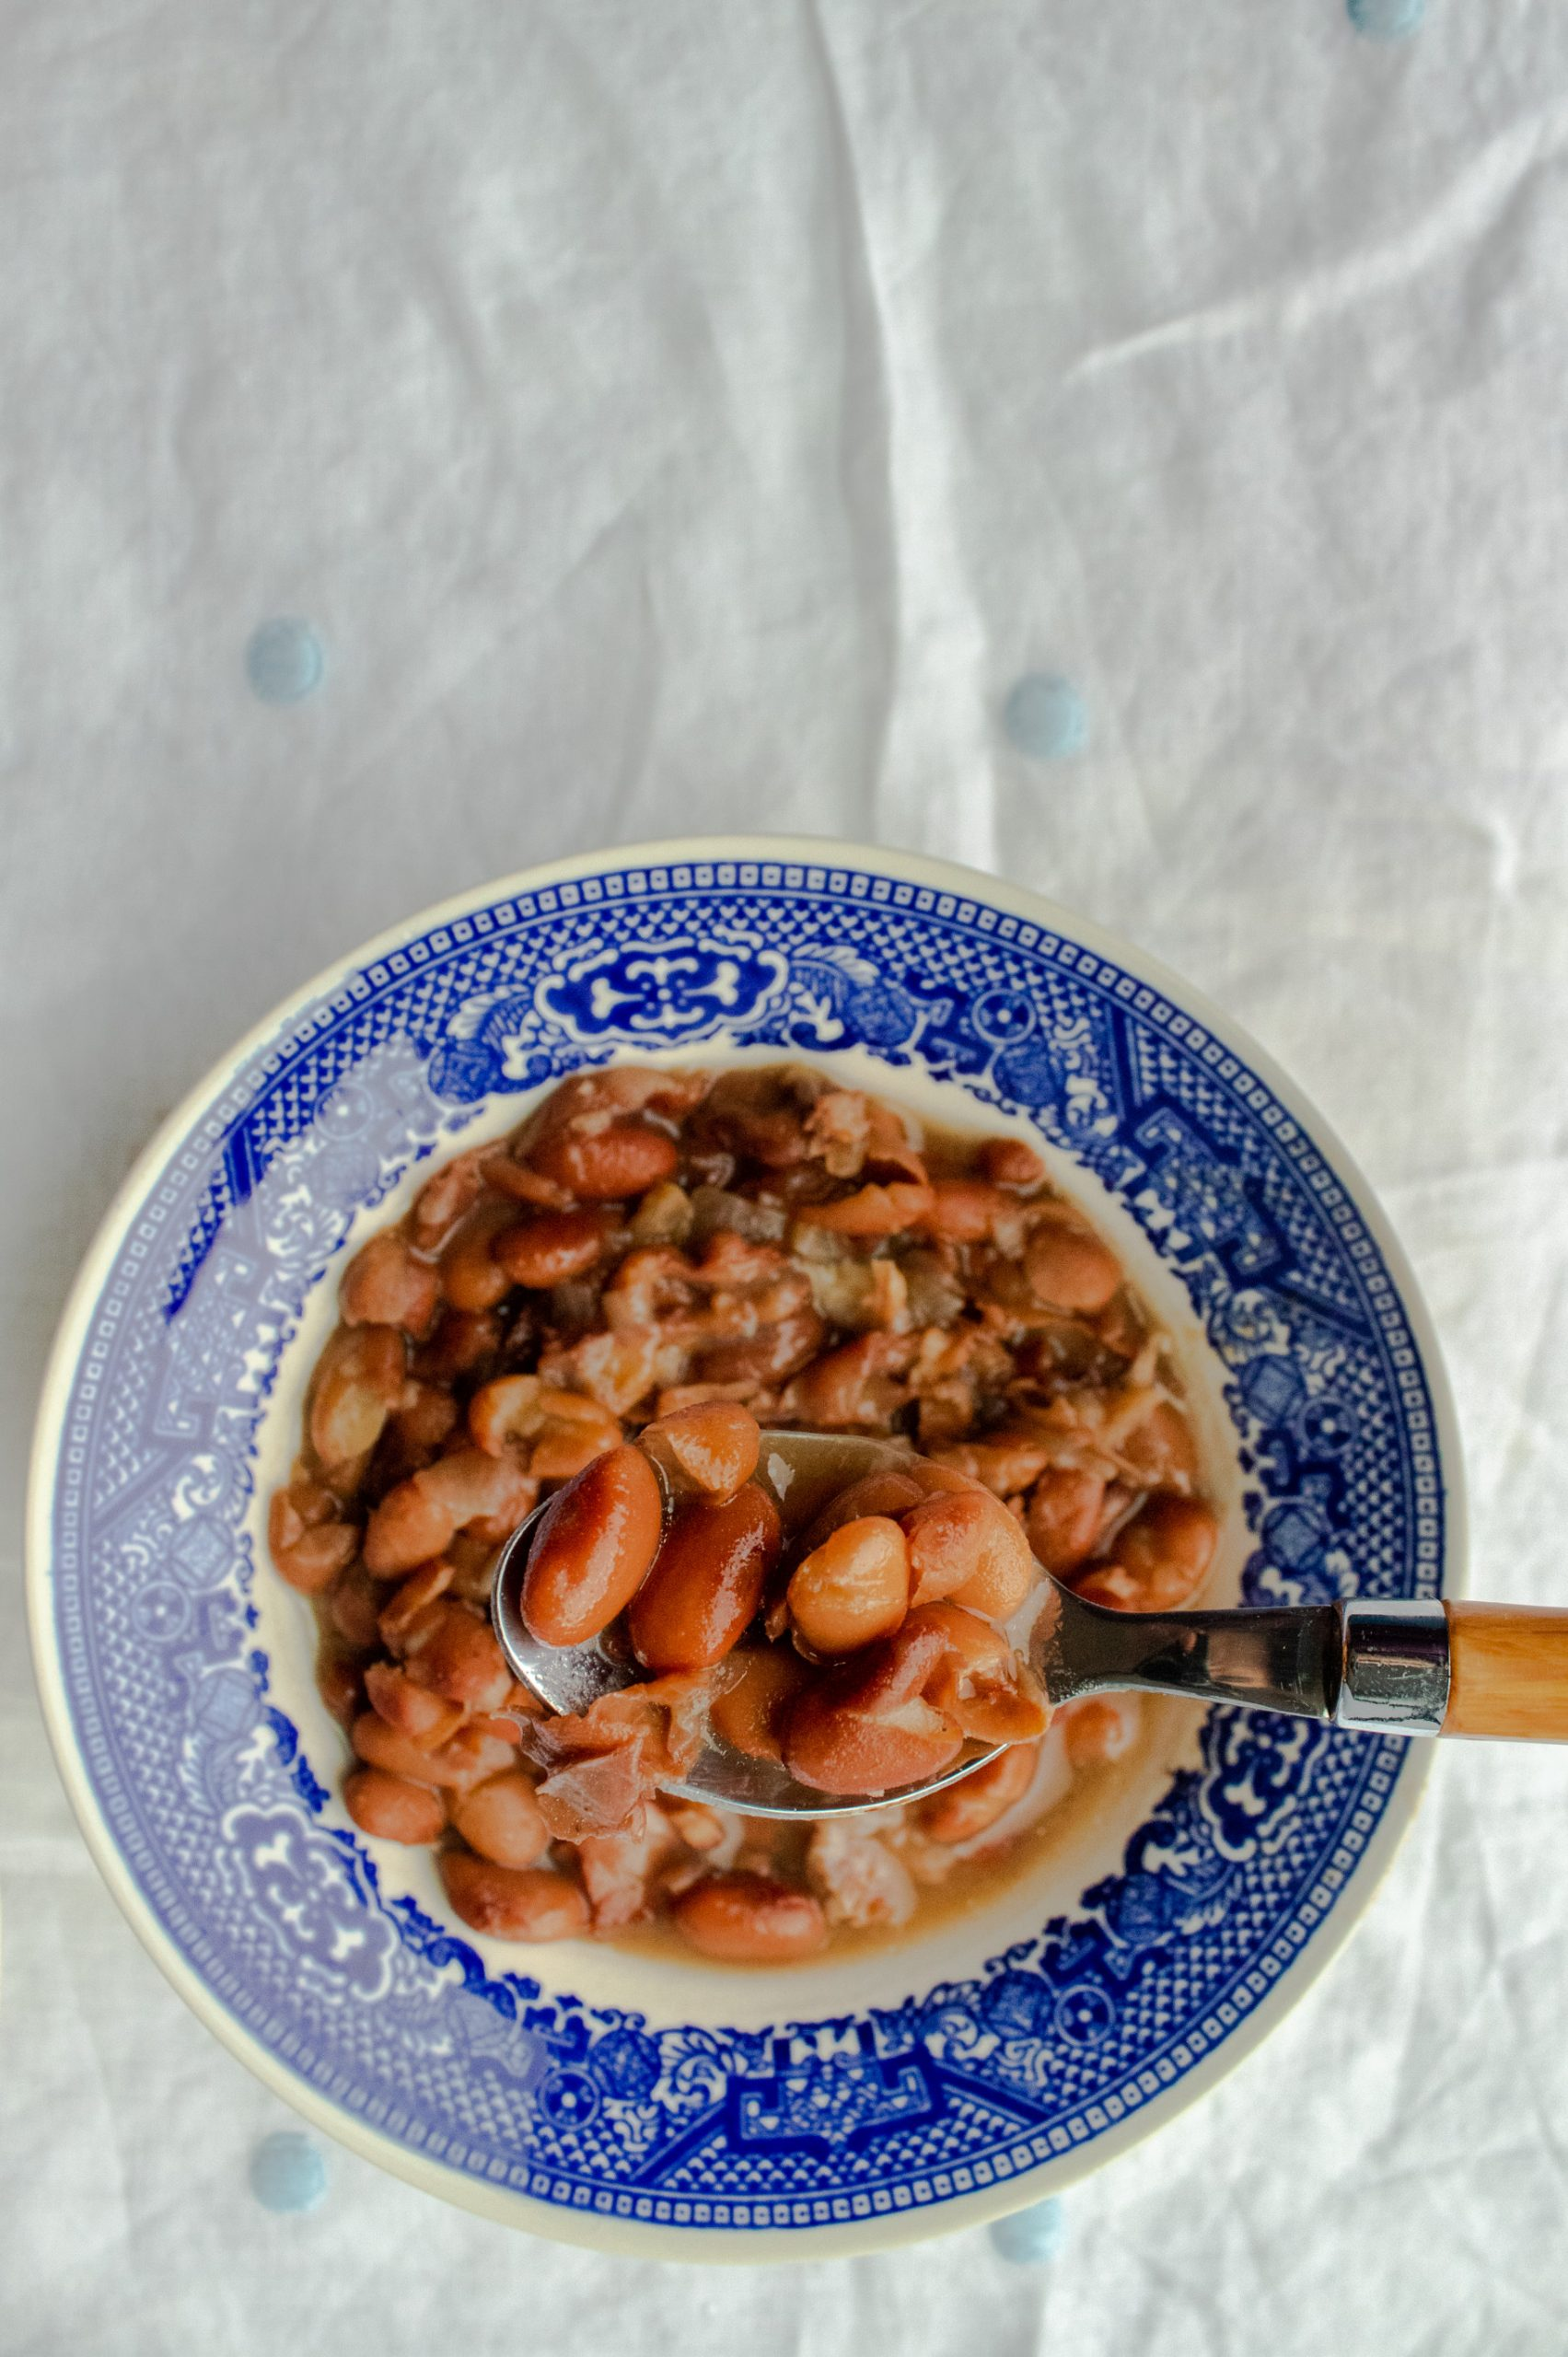 Soup beans, or southern pinto beans, are the perfect way to use up a leftover hamhock. This blog post will walk you through making the best ham and bean soup using your Instant Pot. If you've never cooked dry beans before, fear not, this post is just for you!